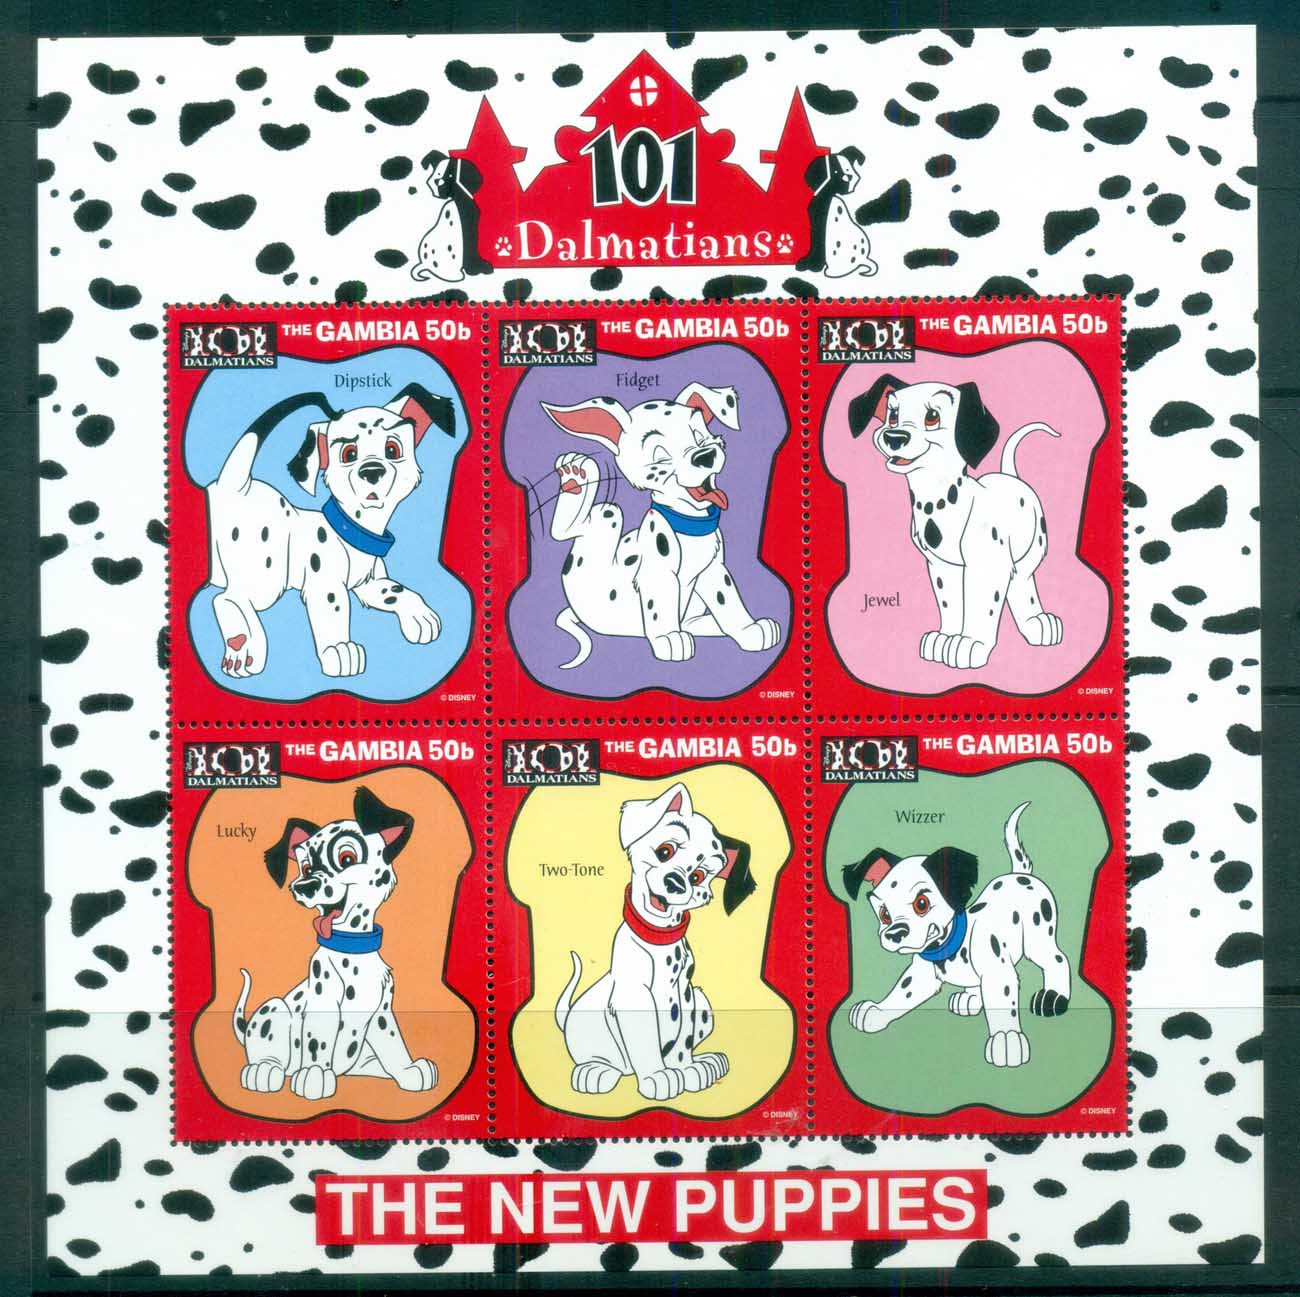 Gambia 1997 Disney, 101 Dalmations, The New Puppies, sheetlet MUH lot78958